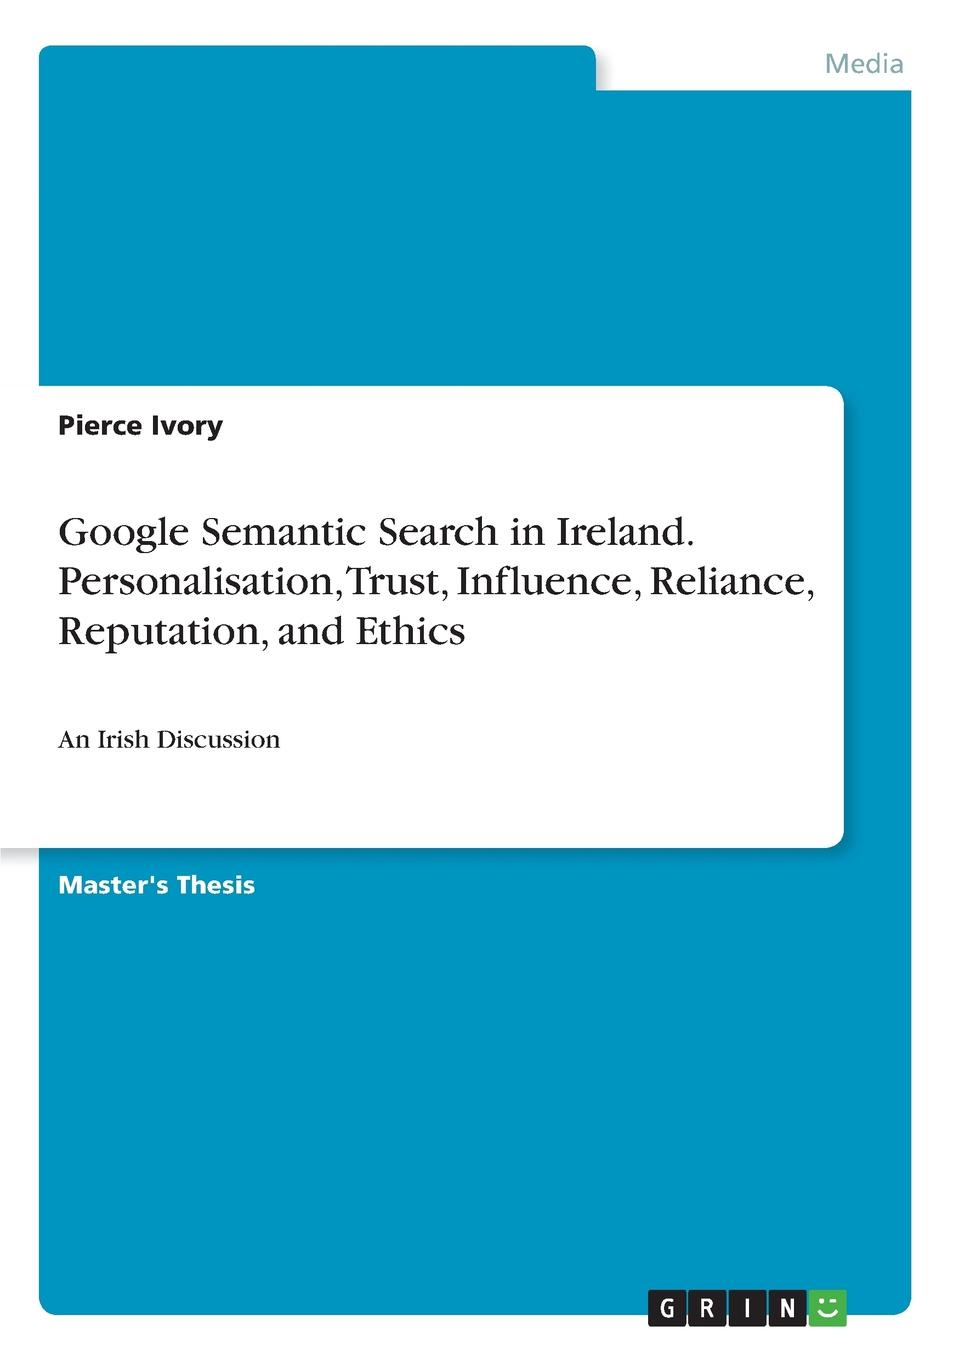 Pierce Ivory Google Semantic Search in Ireland. Personalisation, Trust, Influence, Reliance, Reputation, and Ethics the search warrant